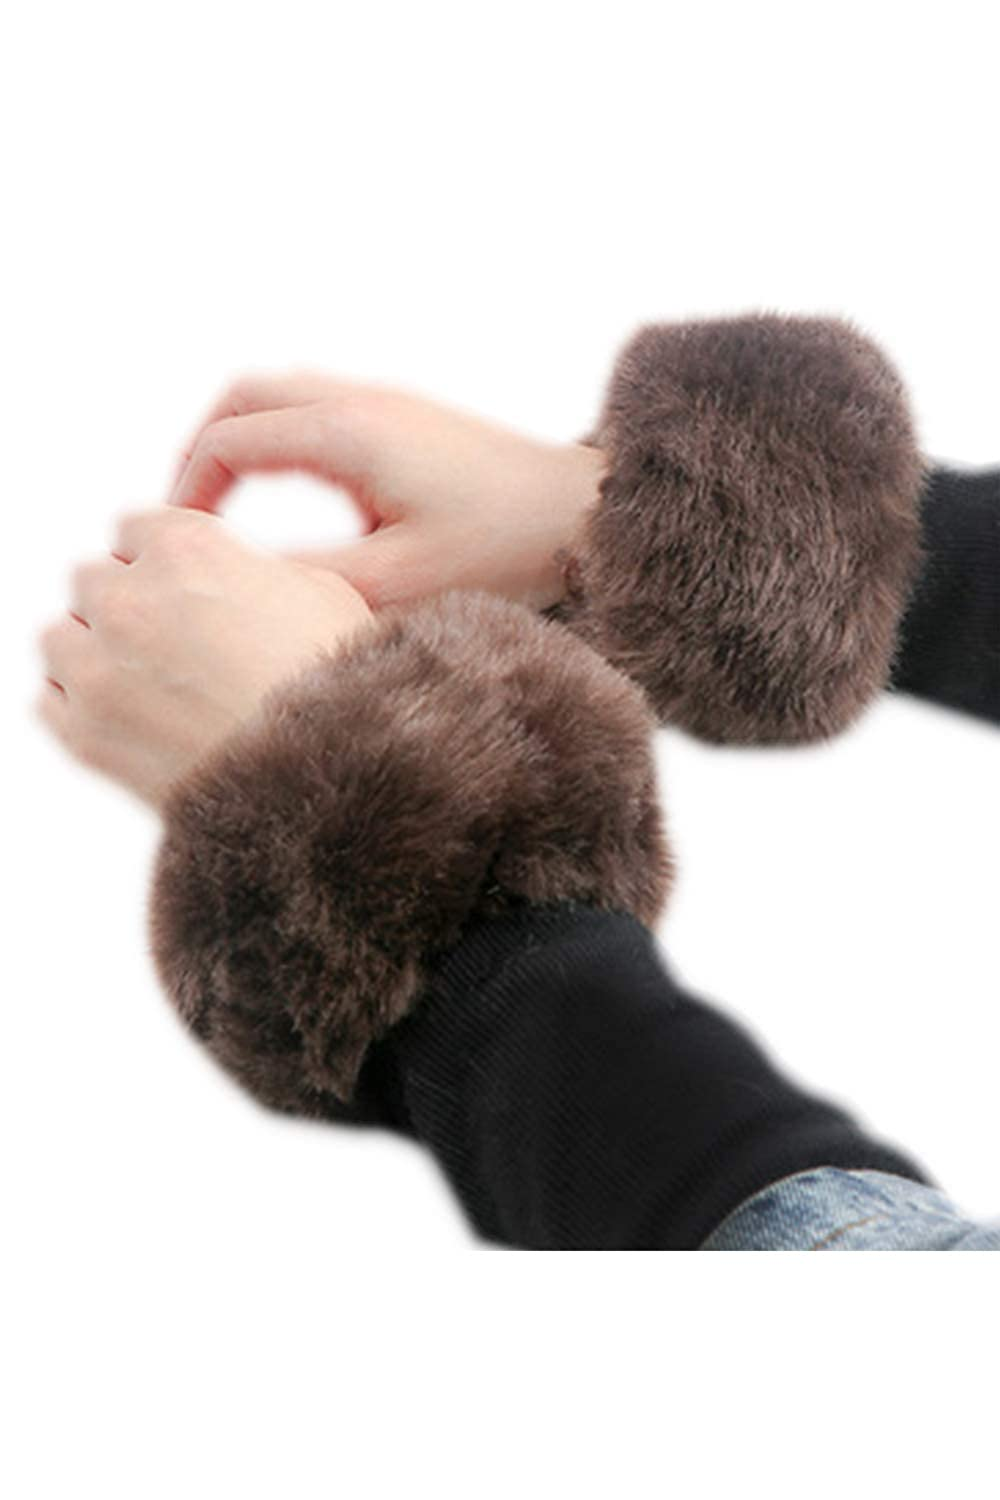 Women Fuax Fur Short Arm Warmer Wrist Cuffs Fingerless Gloves Girls UKzin8102525-Black-F